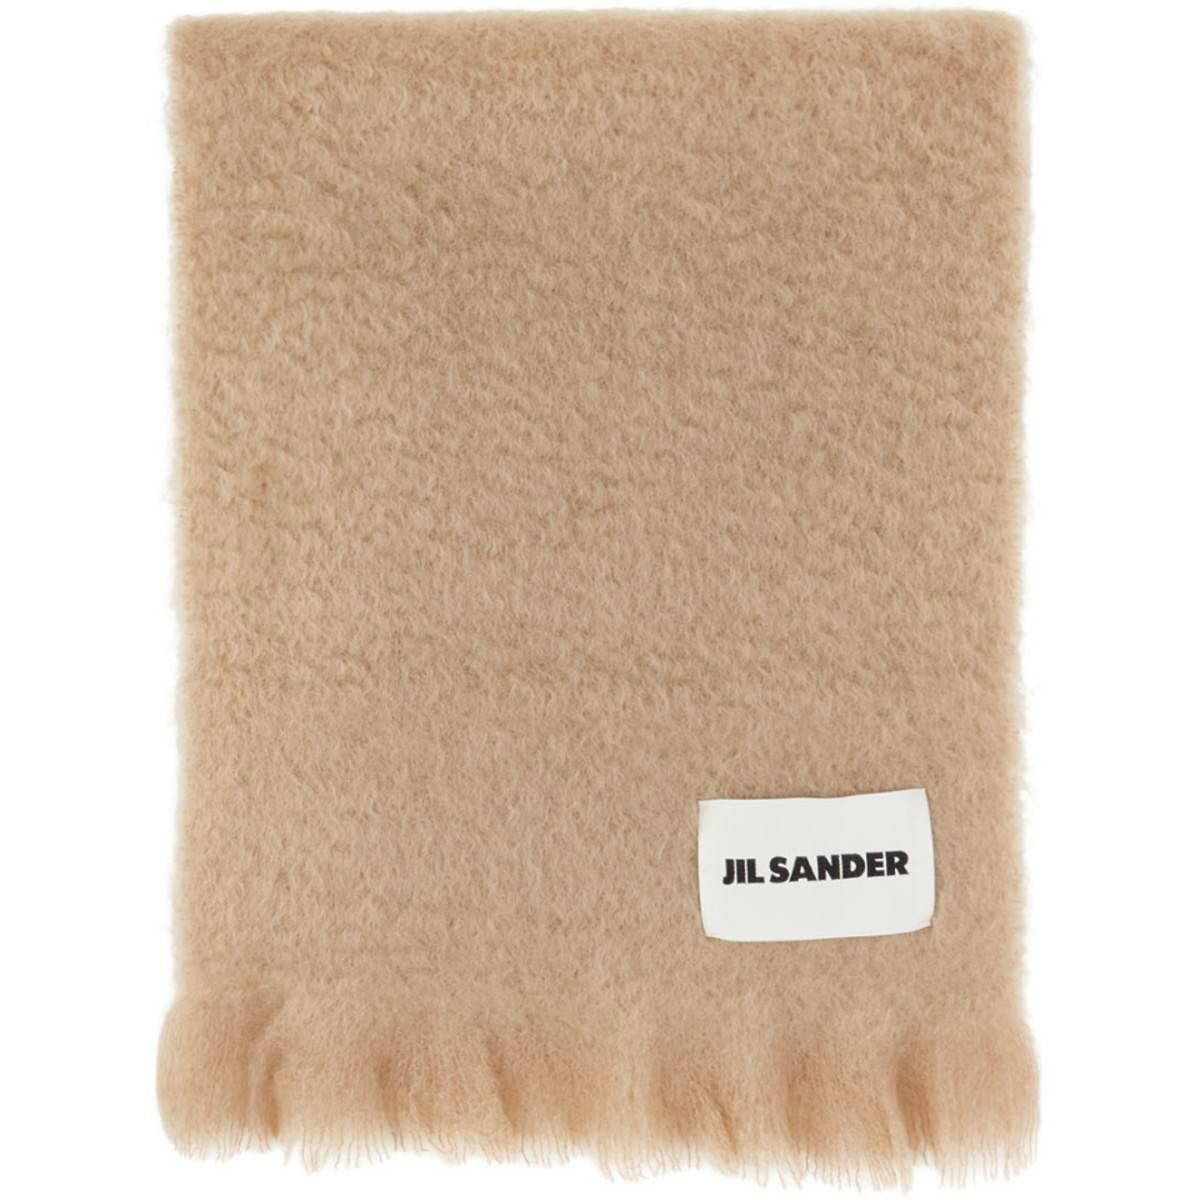 Jil Sander Beige Mohair and Wool Scarf Ssense USA MEN Men ACCESSORIES Mens SCARFS